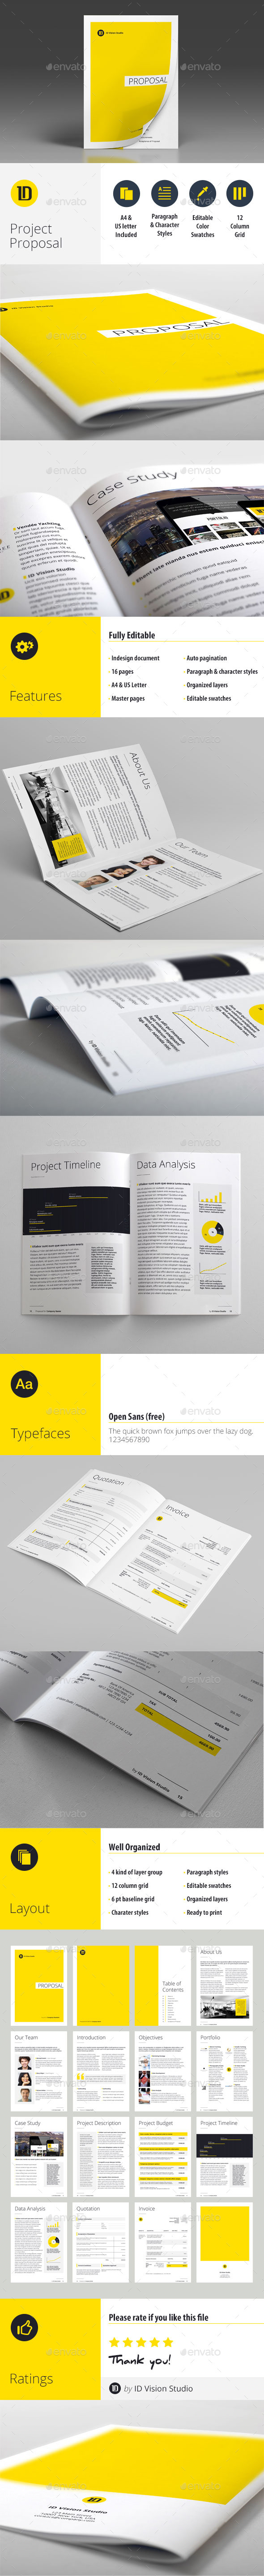 GraphicRiver Project Proposal Template 9937856